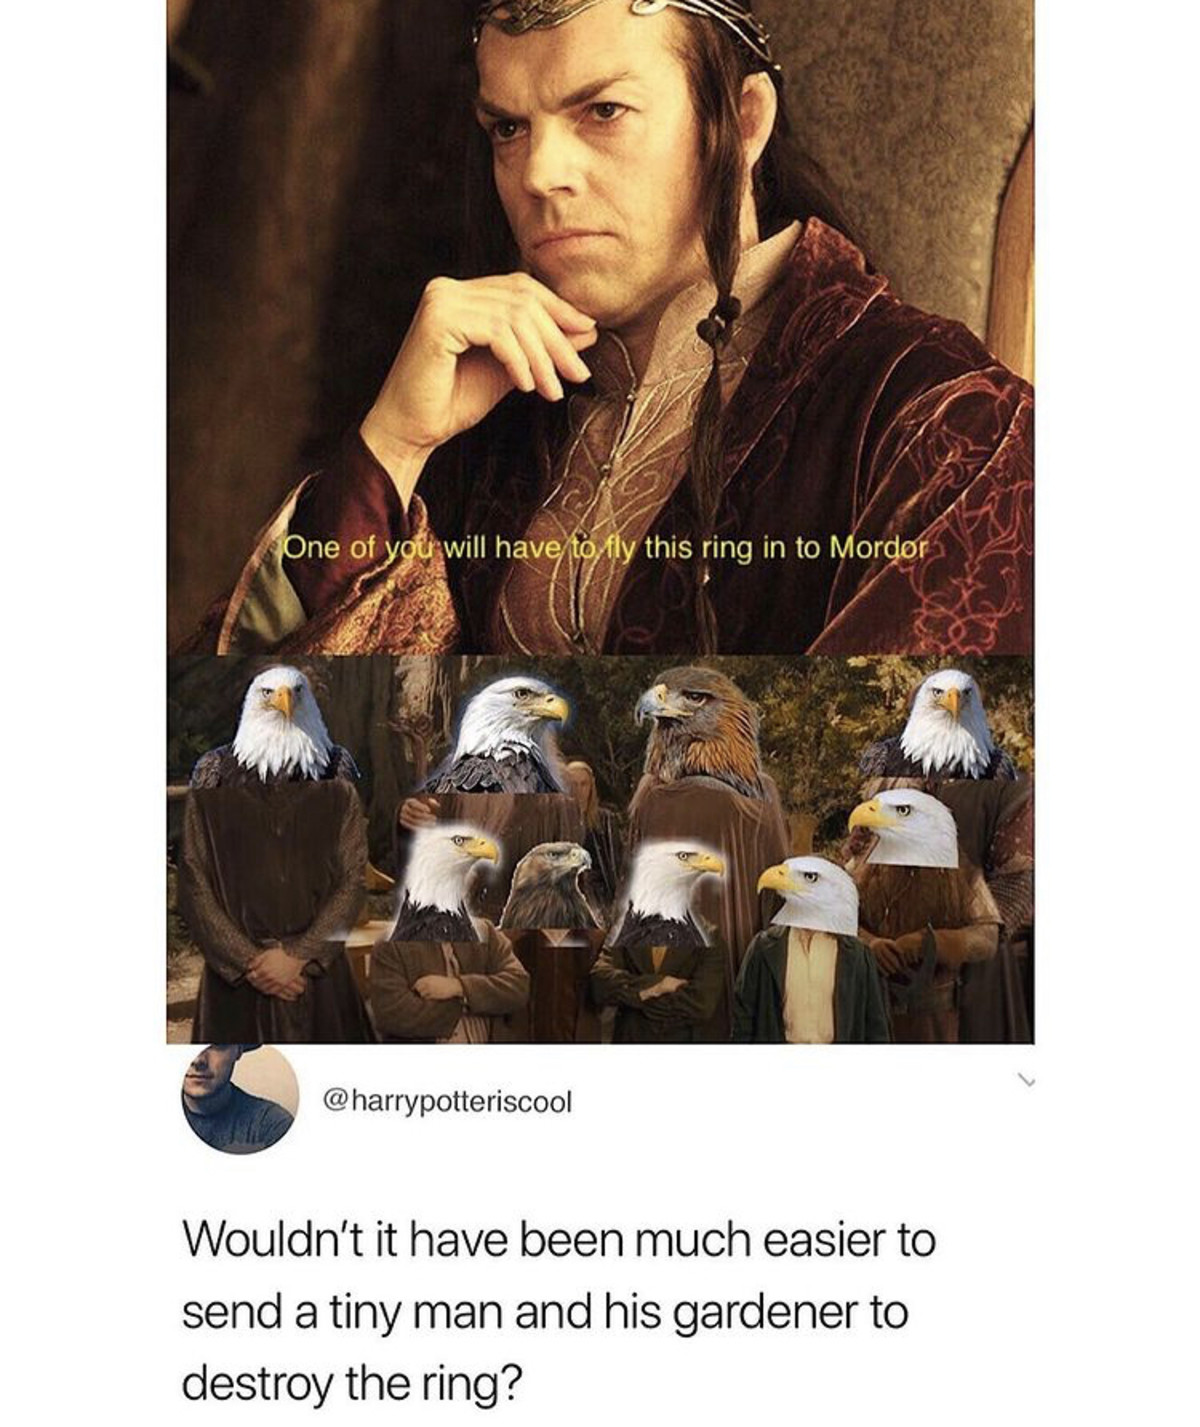 entangled Pelican. .. It's always the same question, it's always the same answer: Sauron would have obliterated the eagles from his smalldick-compensation tower, he almost does that